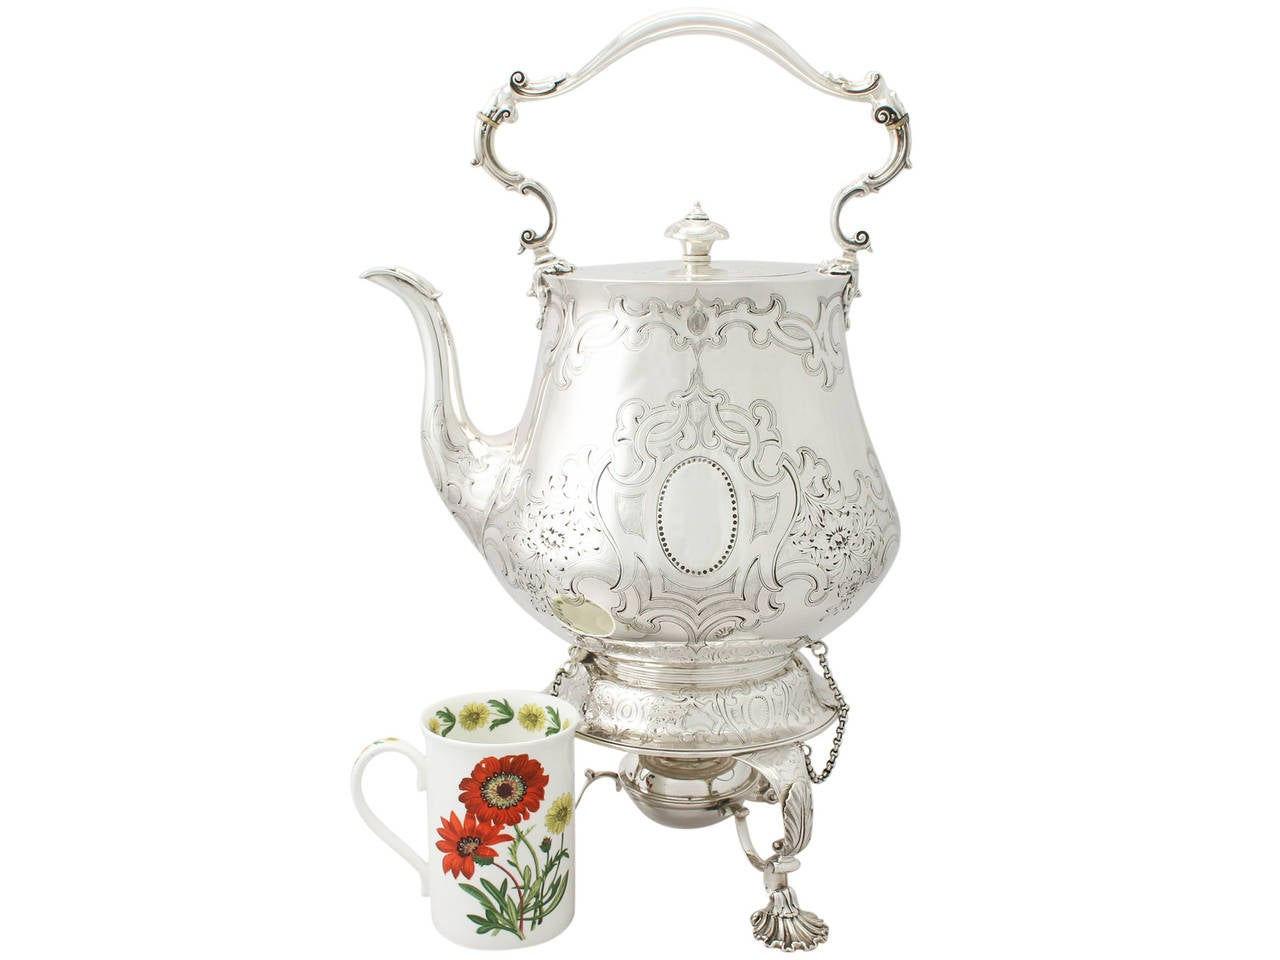 1850s Antique Victorian Sterling Silver Spirit Kettle By John Samuel Hunt For Sale At 1stdibs